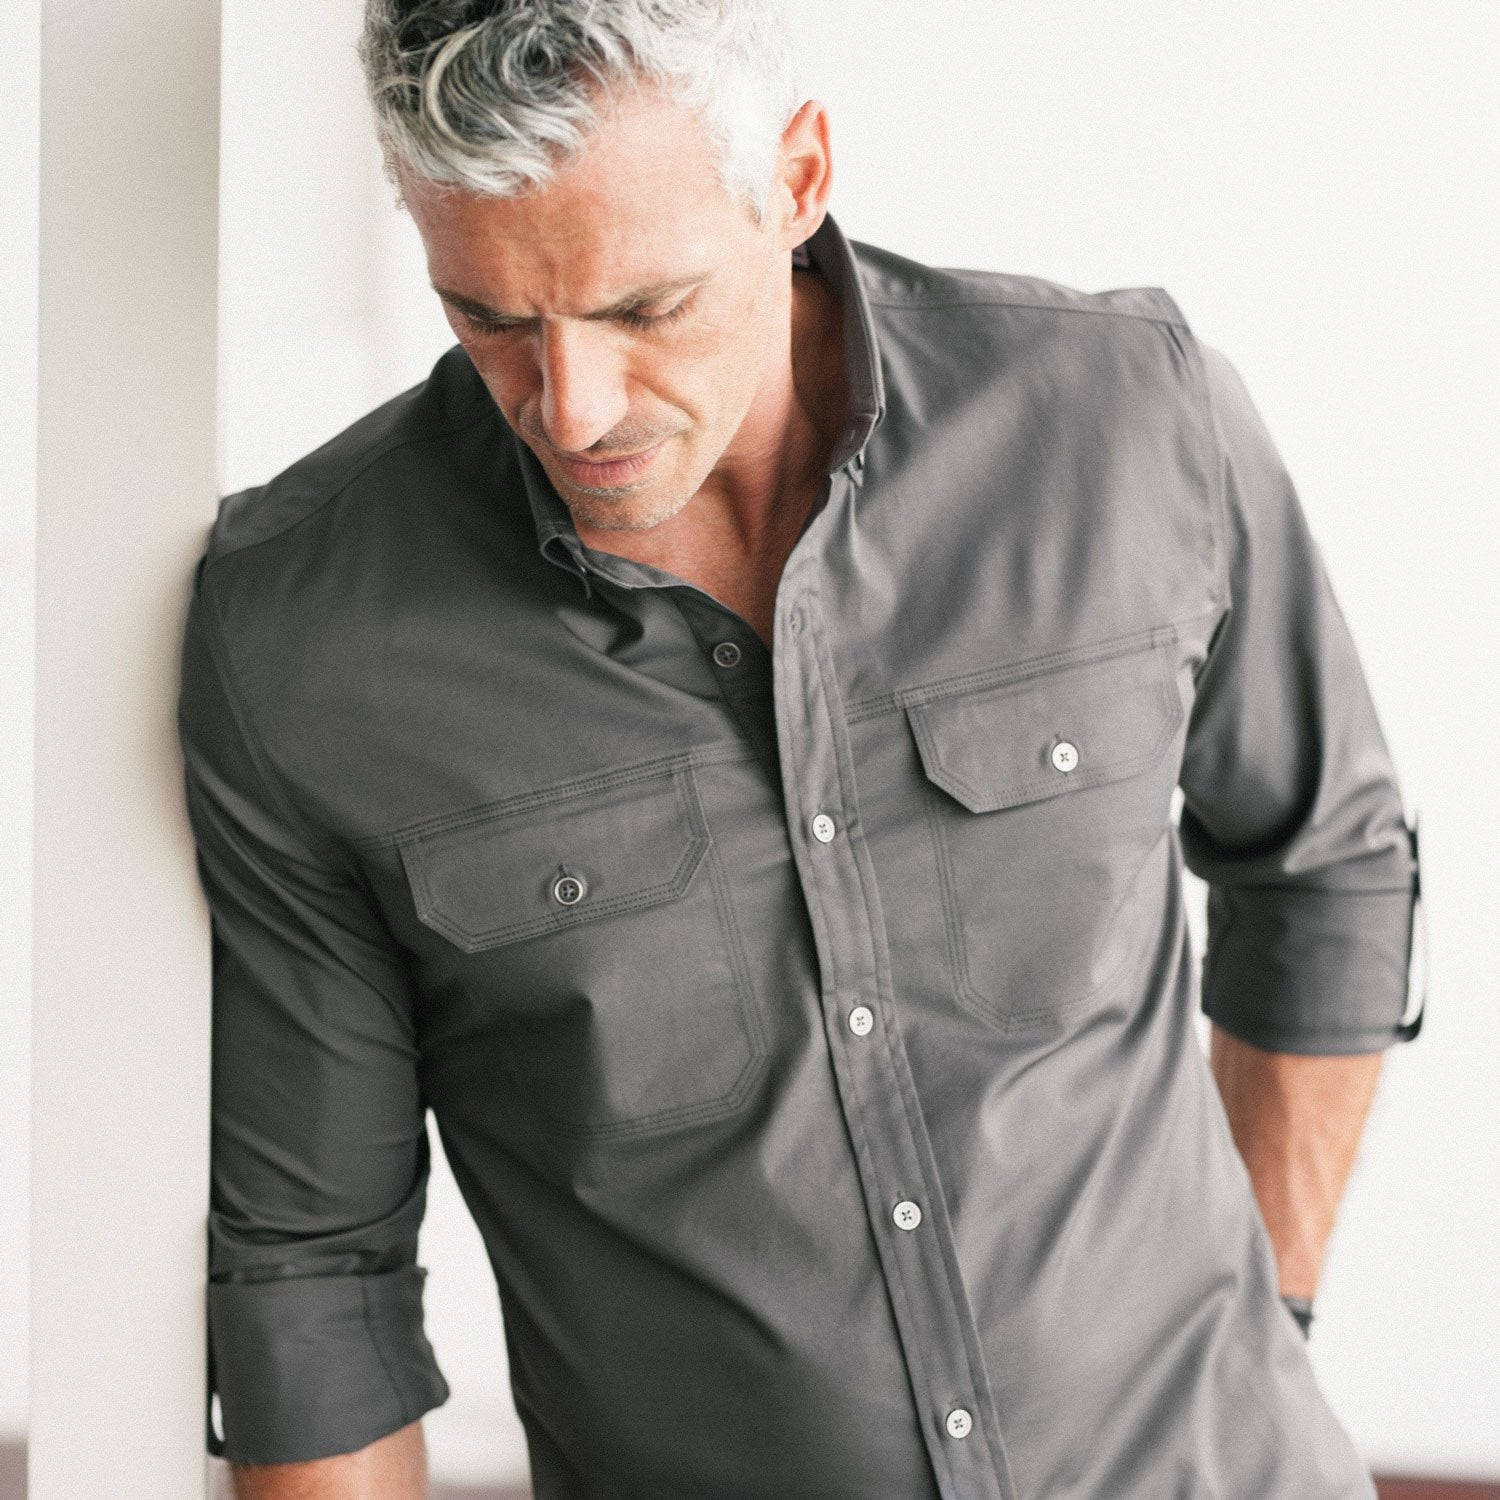 Men's Casual Builder Button Up Shirt in Gray